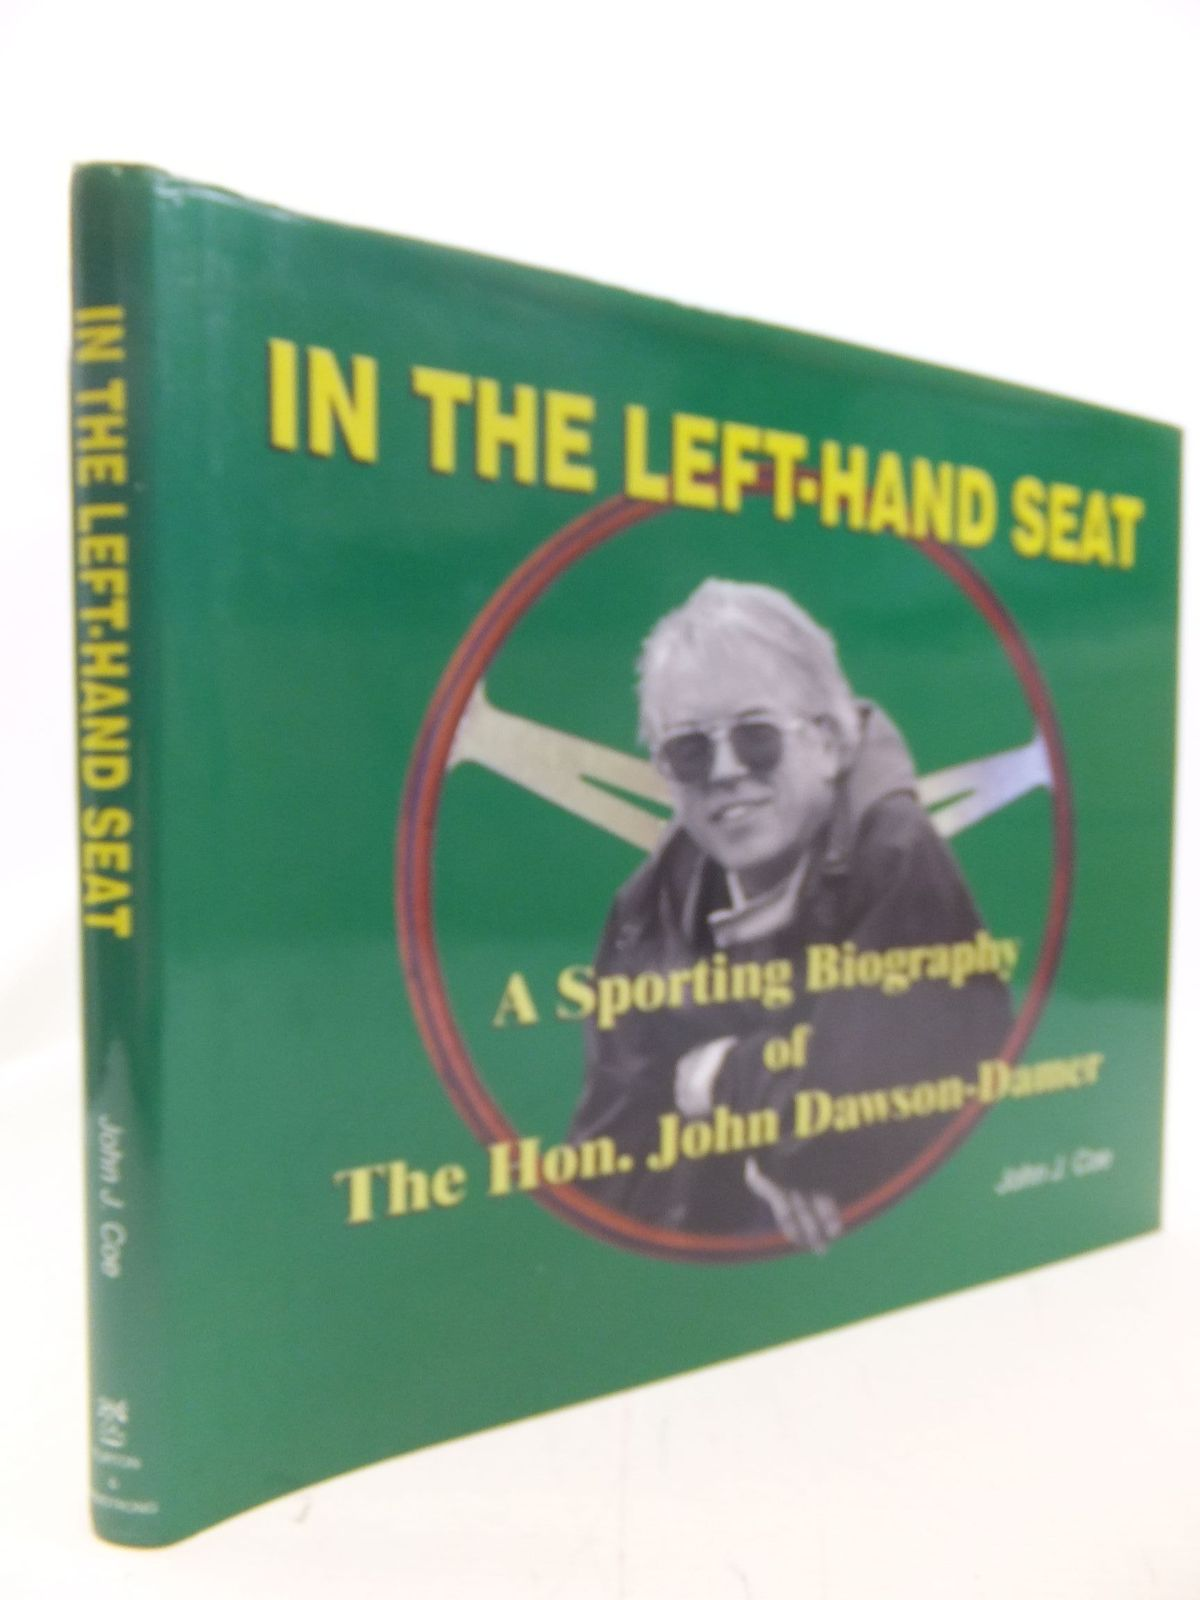 Photo of IN THE LEFT-HAND SEAT A SPORTING BIOGRAPHY OF THE HON. JOHN DAWSON-DAMER written by Coe, John J. published by Turton & Armstrong (STOCK CODE: 1711235)  for sale by Stella & Rose's Books